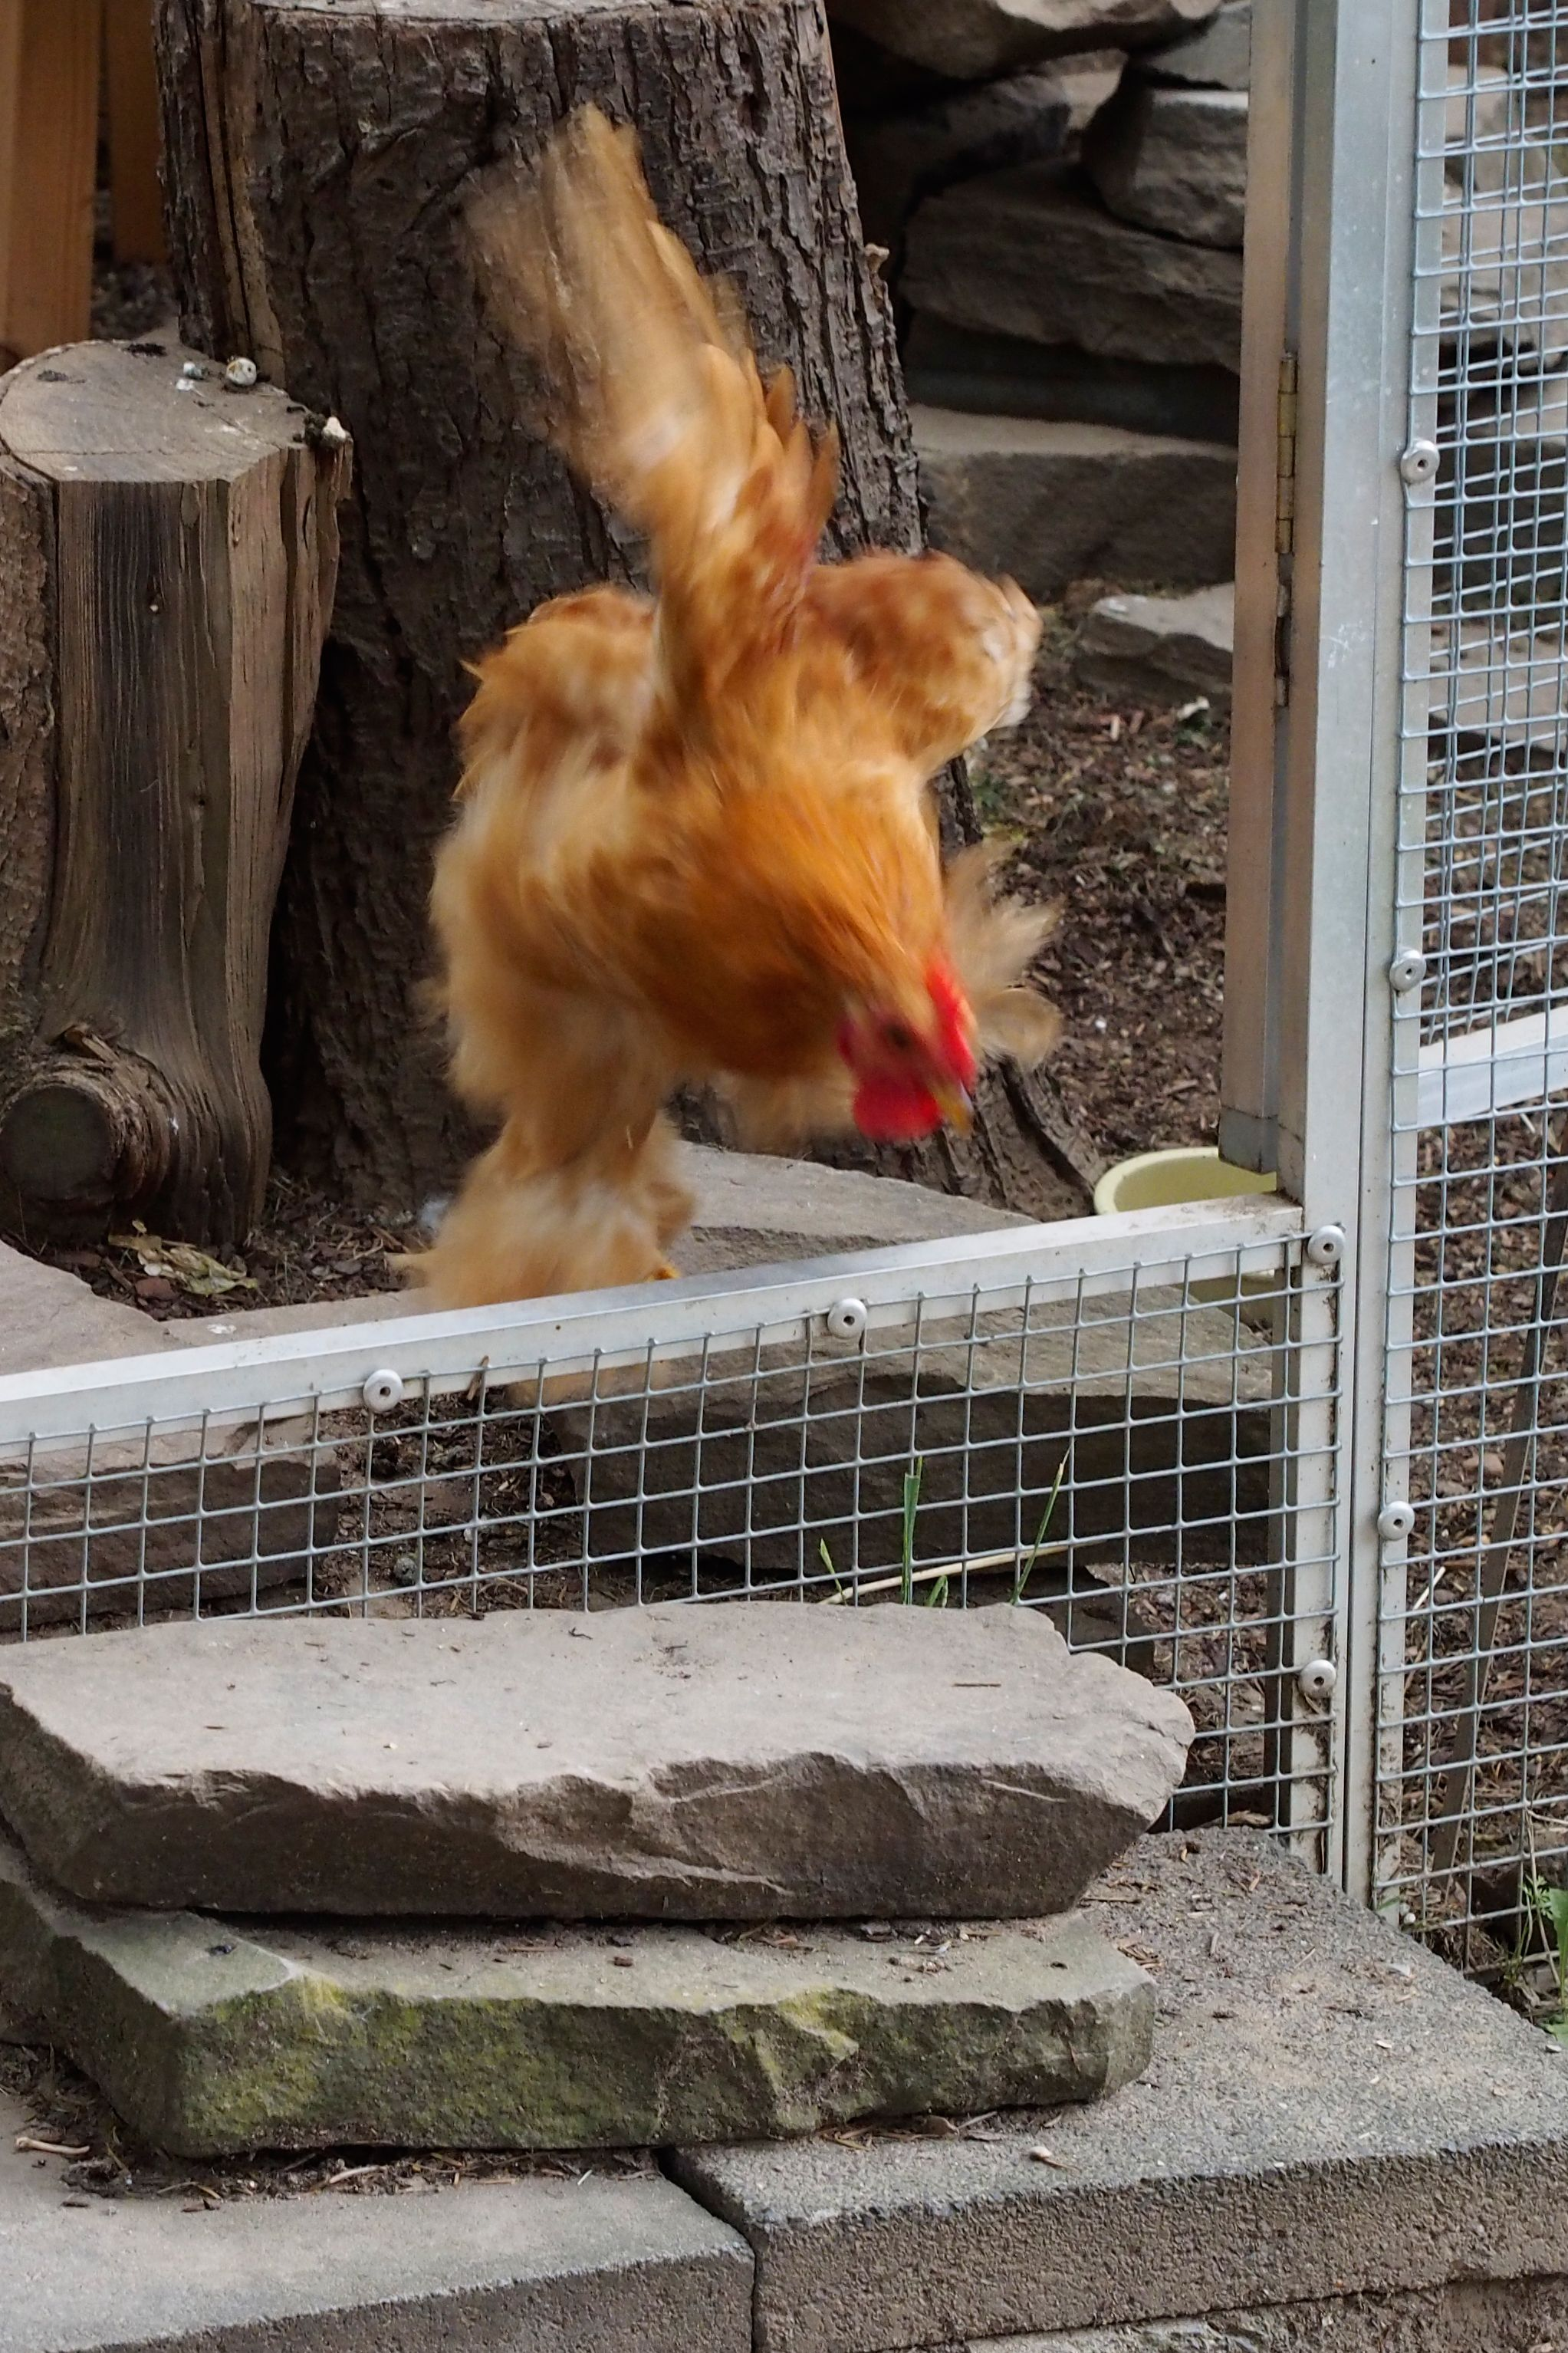 Little rooster taking a fast turn to avoid meeting some bitchy hens.  Oly OM-D E-M5 w/ m.Zuiko 1,8 45 mm.